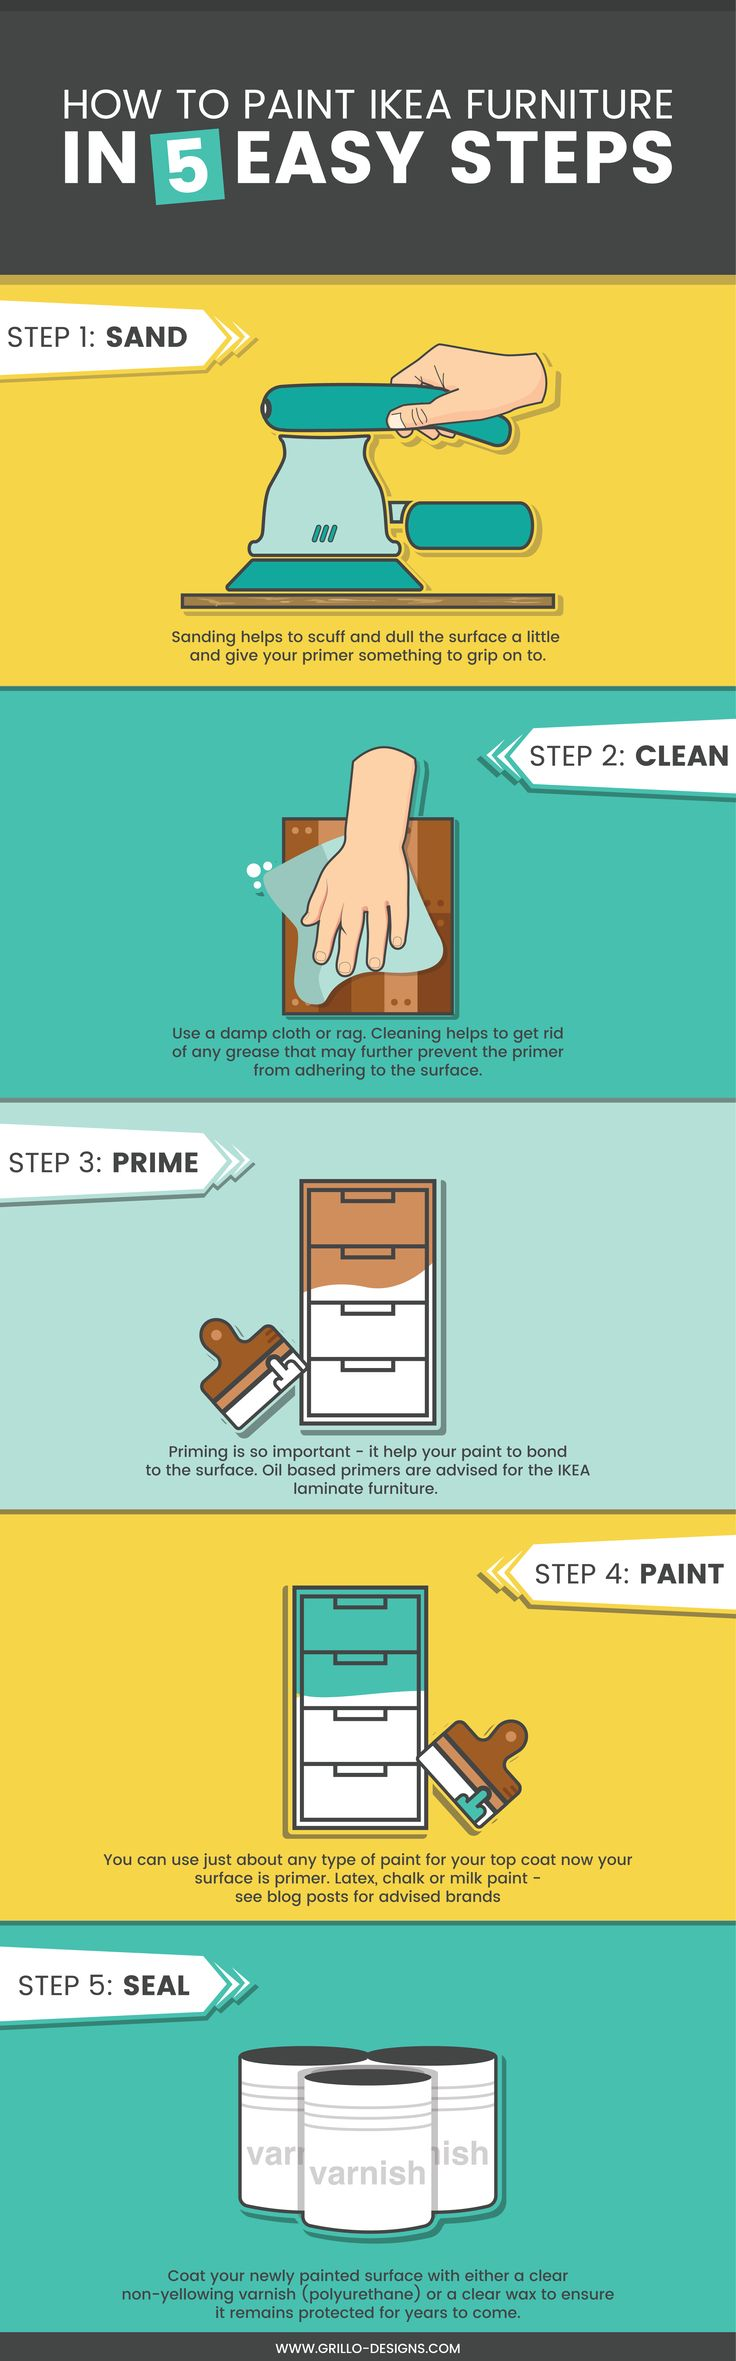 IKEA furniture can be tricky to paint, but if done the right way, can make such a huge difference! Here are my steps on how to paint IKEA furniture.